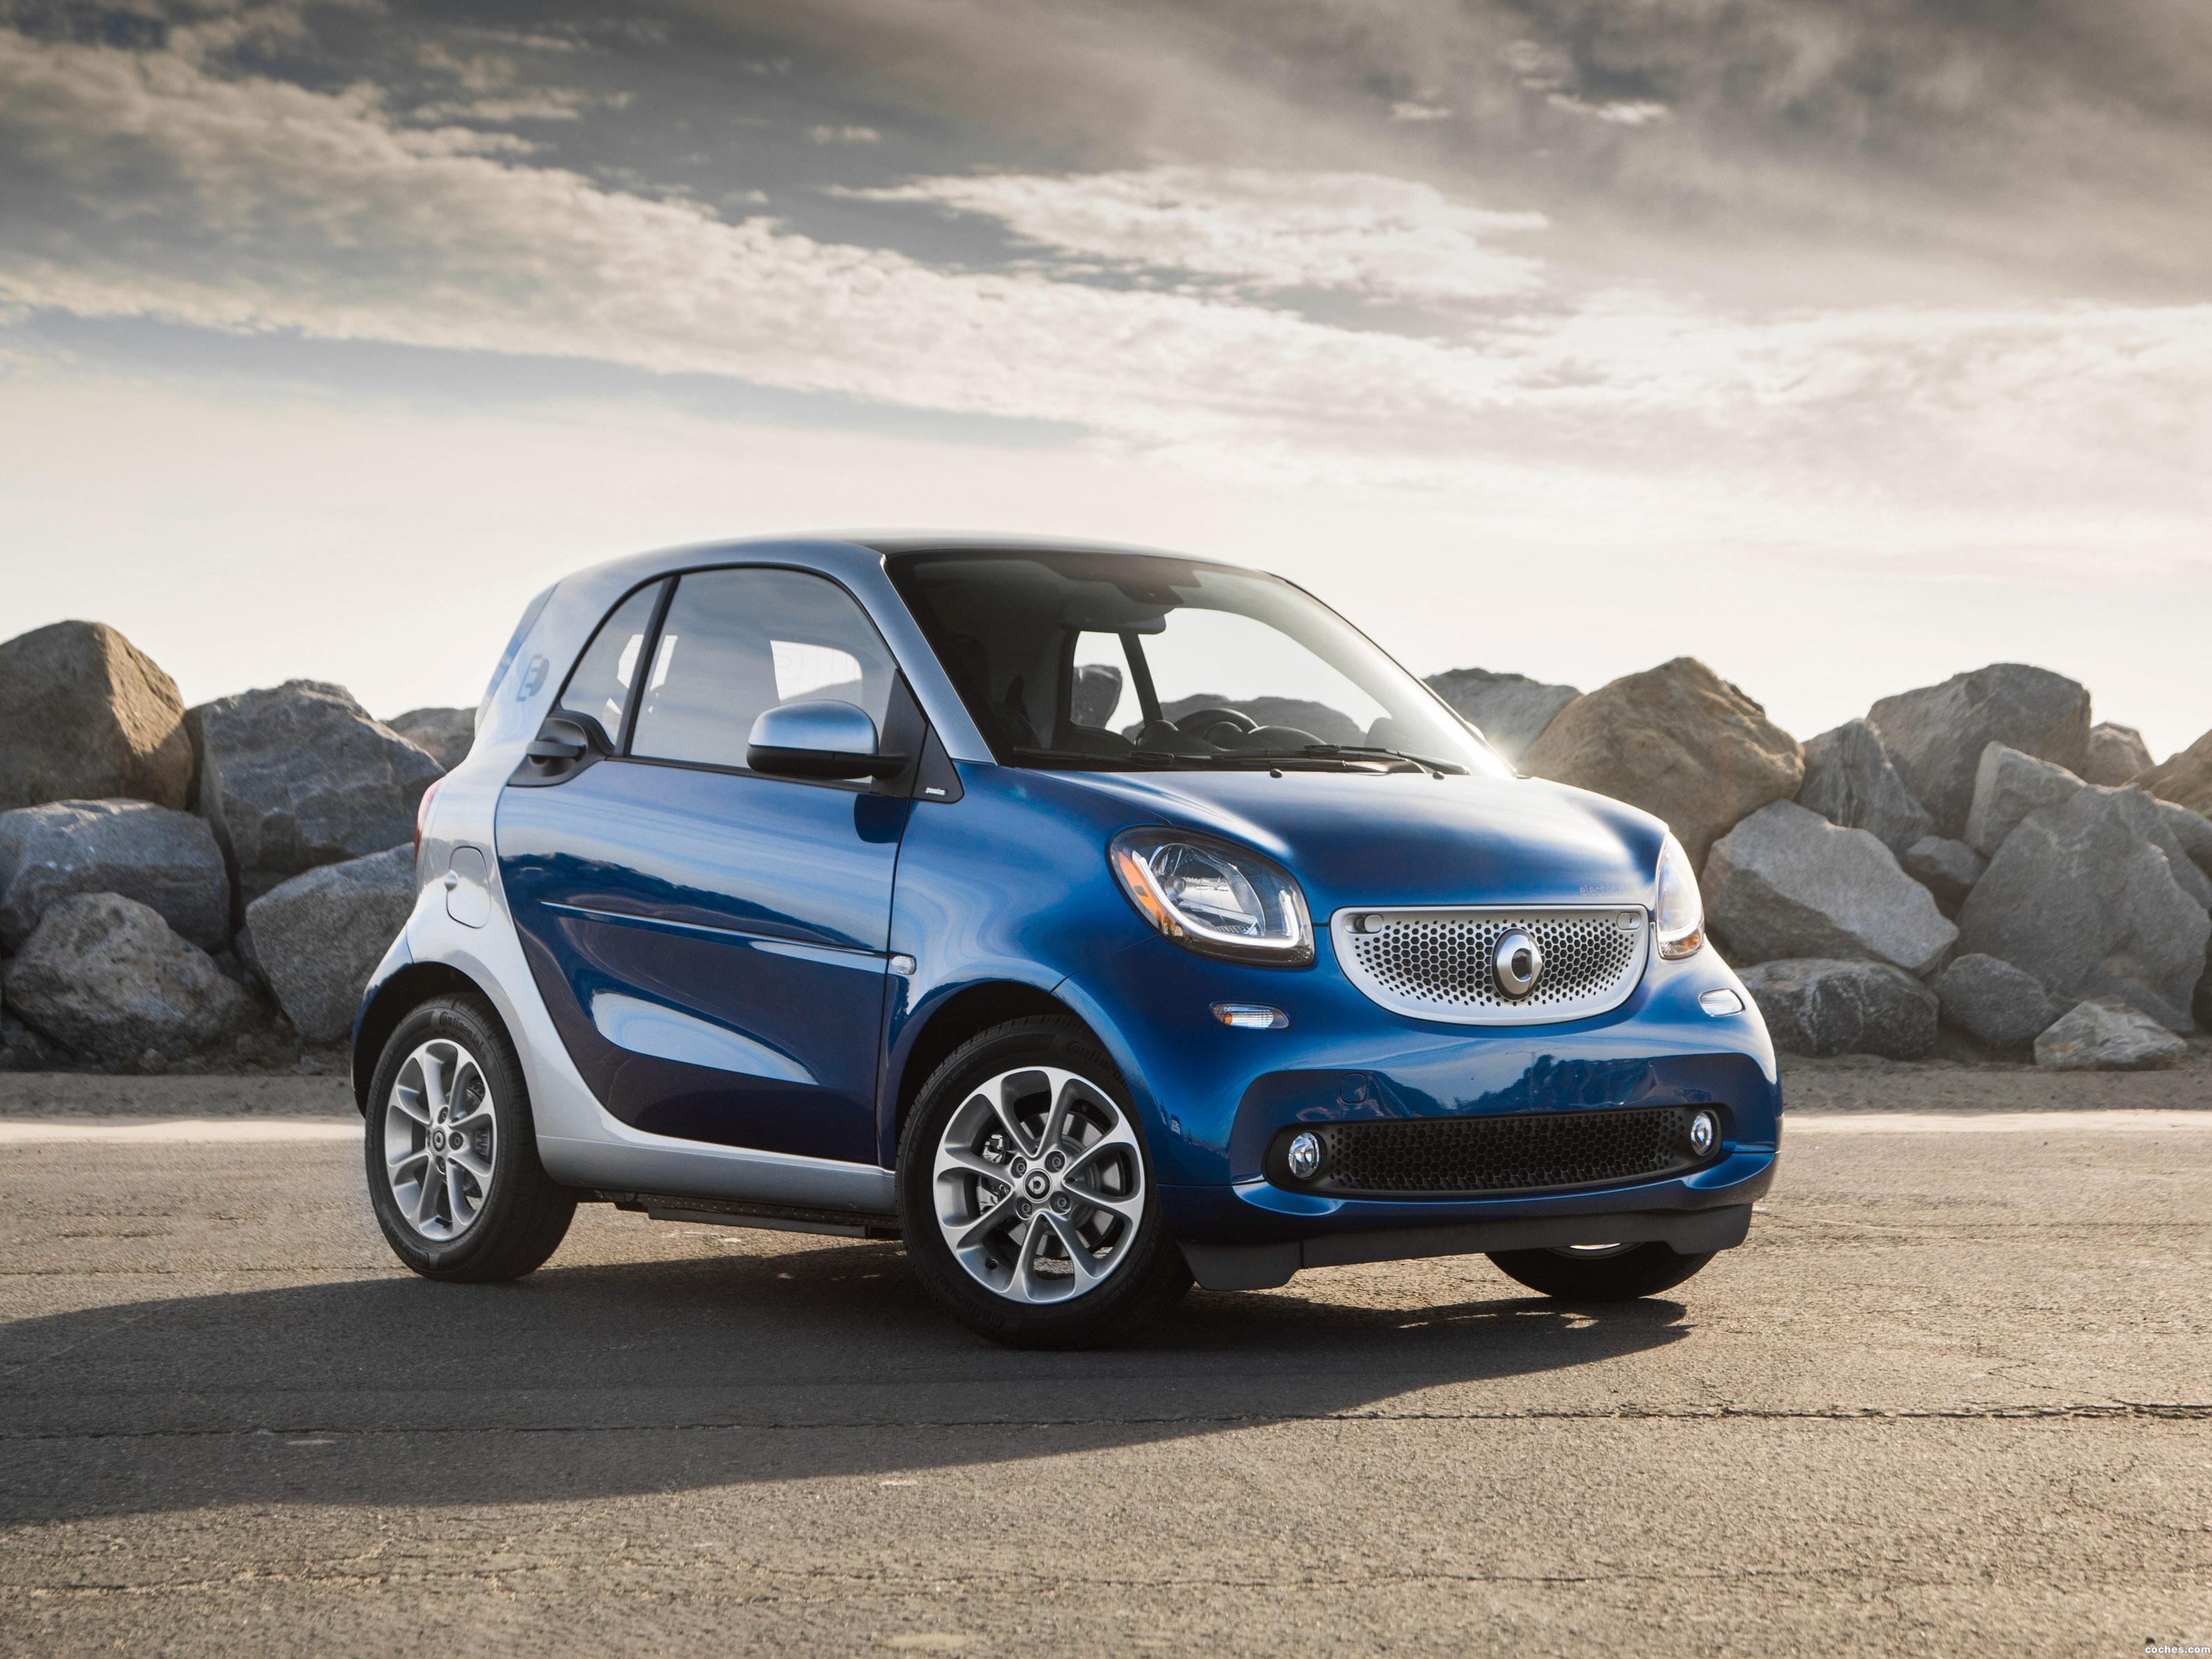 smart_fortwo-passion-electric-drive-coupe-c453-usa-2017_r27.jpg